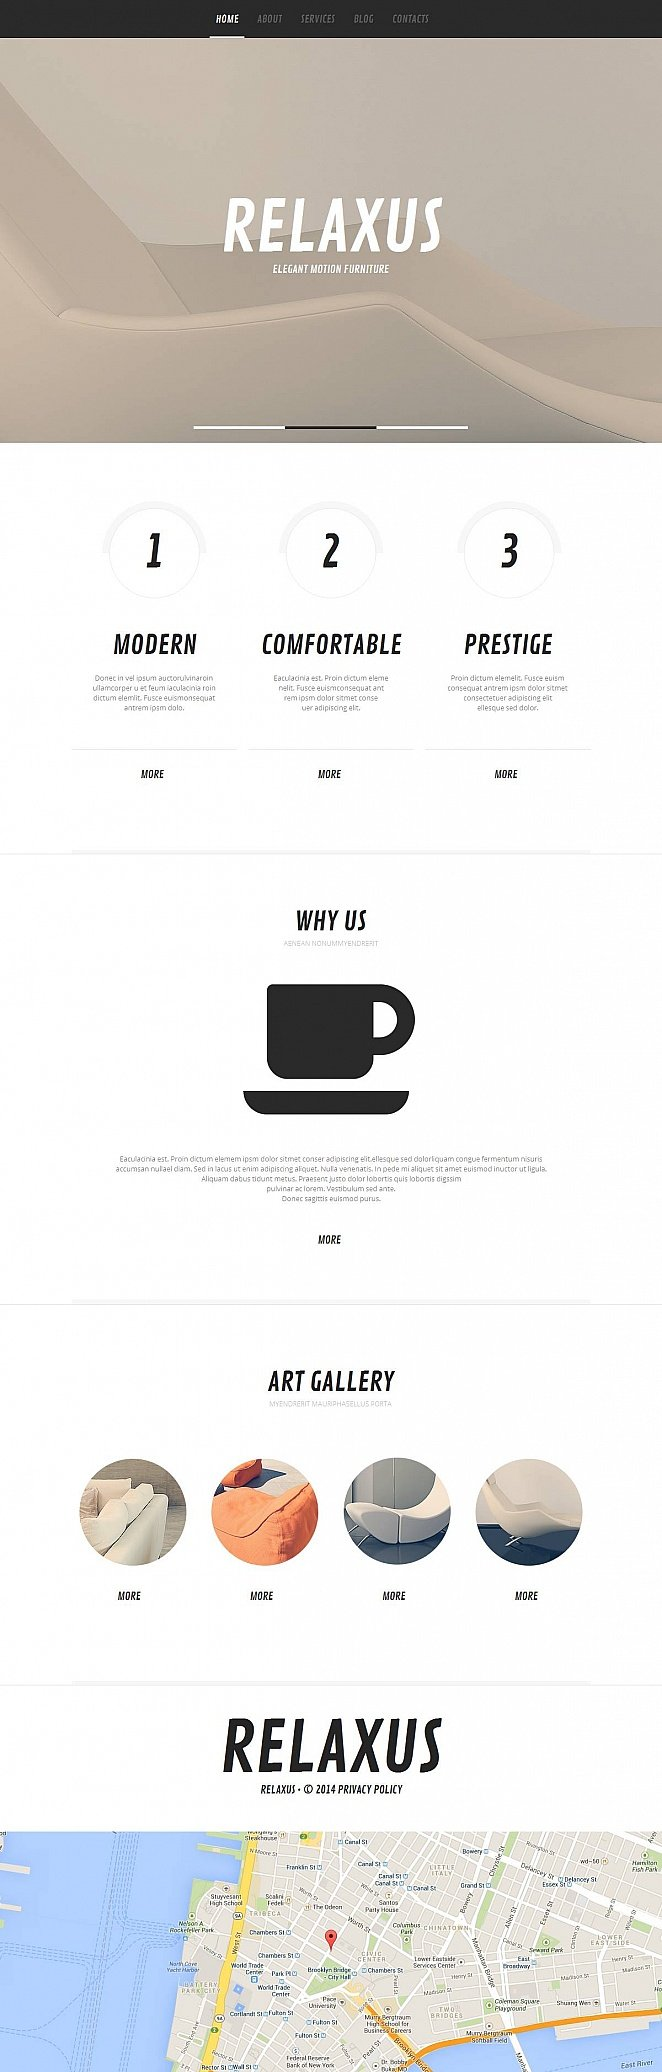 Reclining Furniture Website Template with Flat Design - image